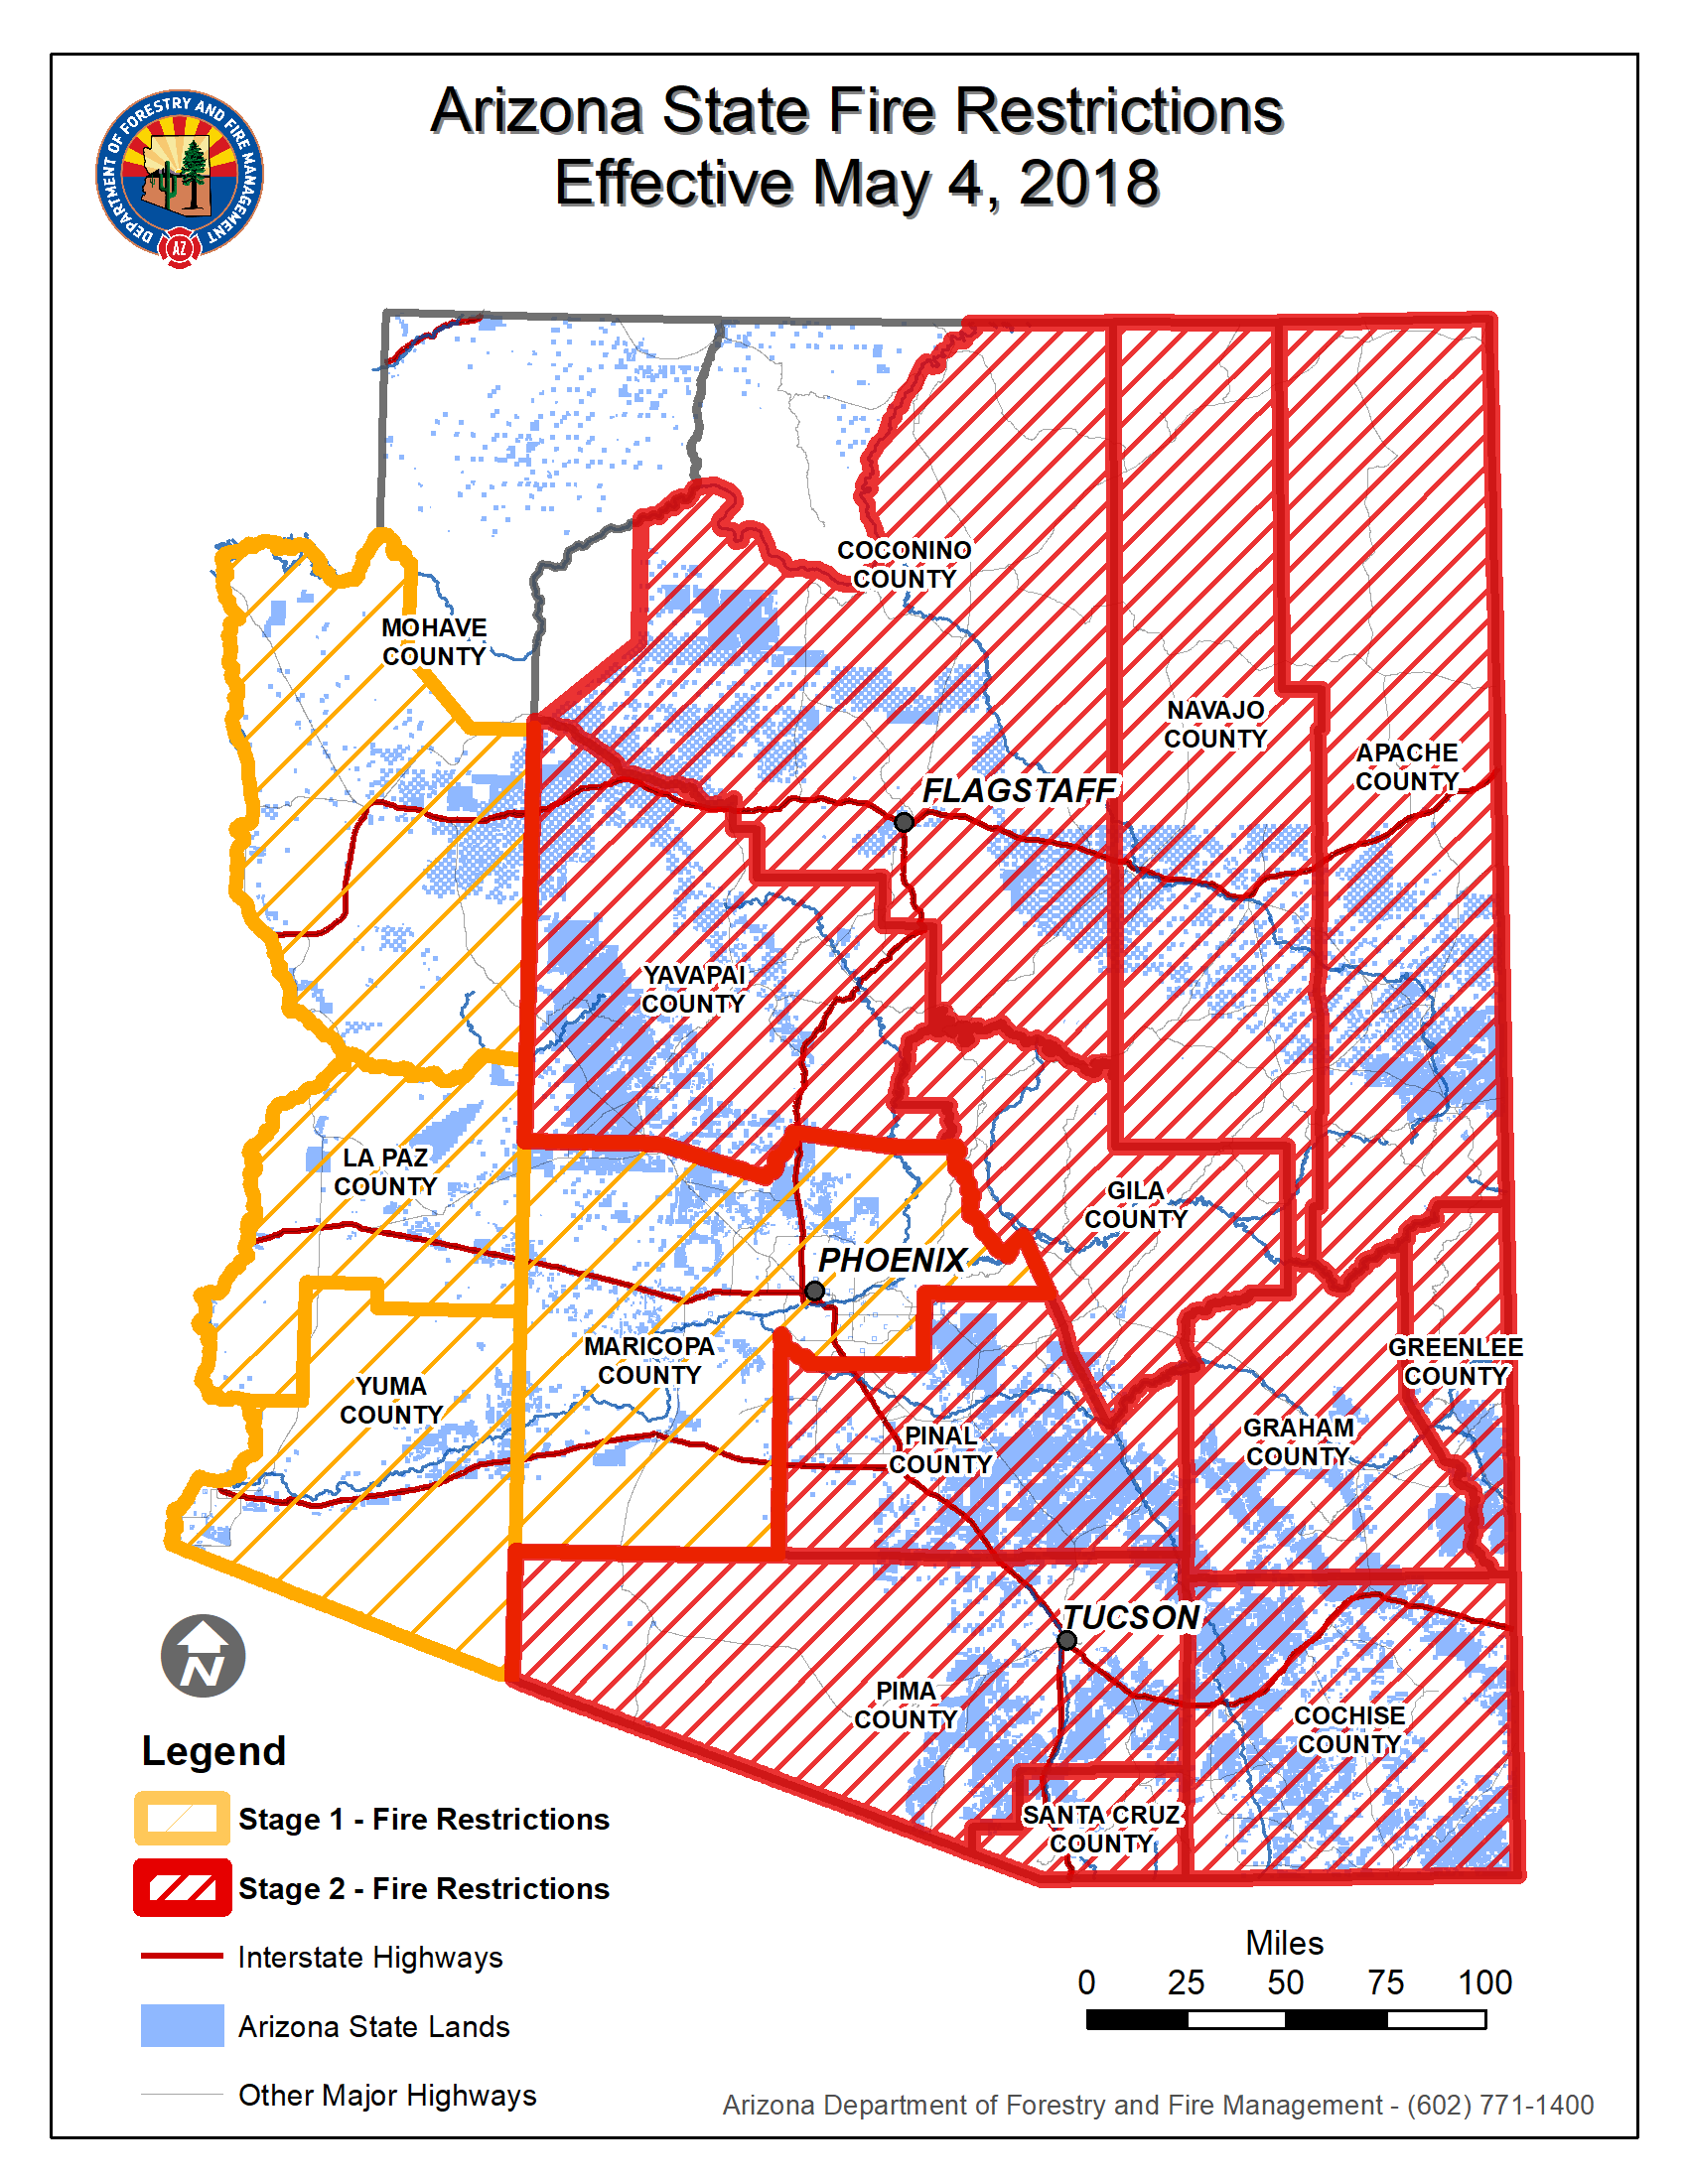 State Executing Stage Ii Fire Restrictions On Counties Across